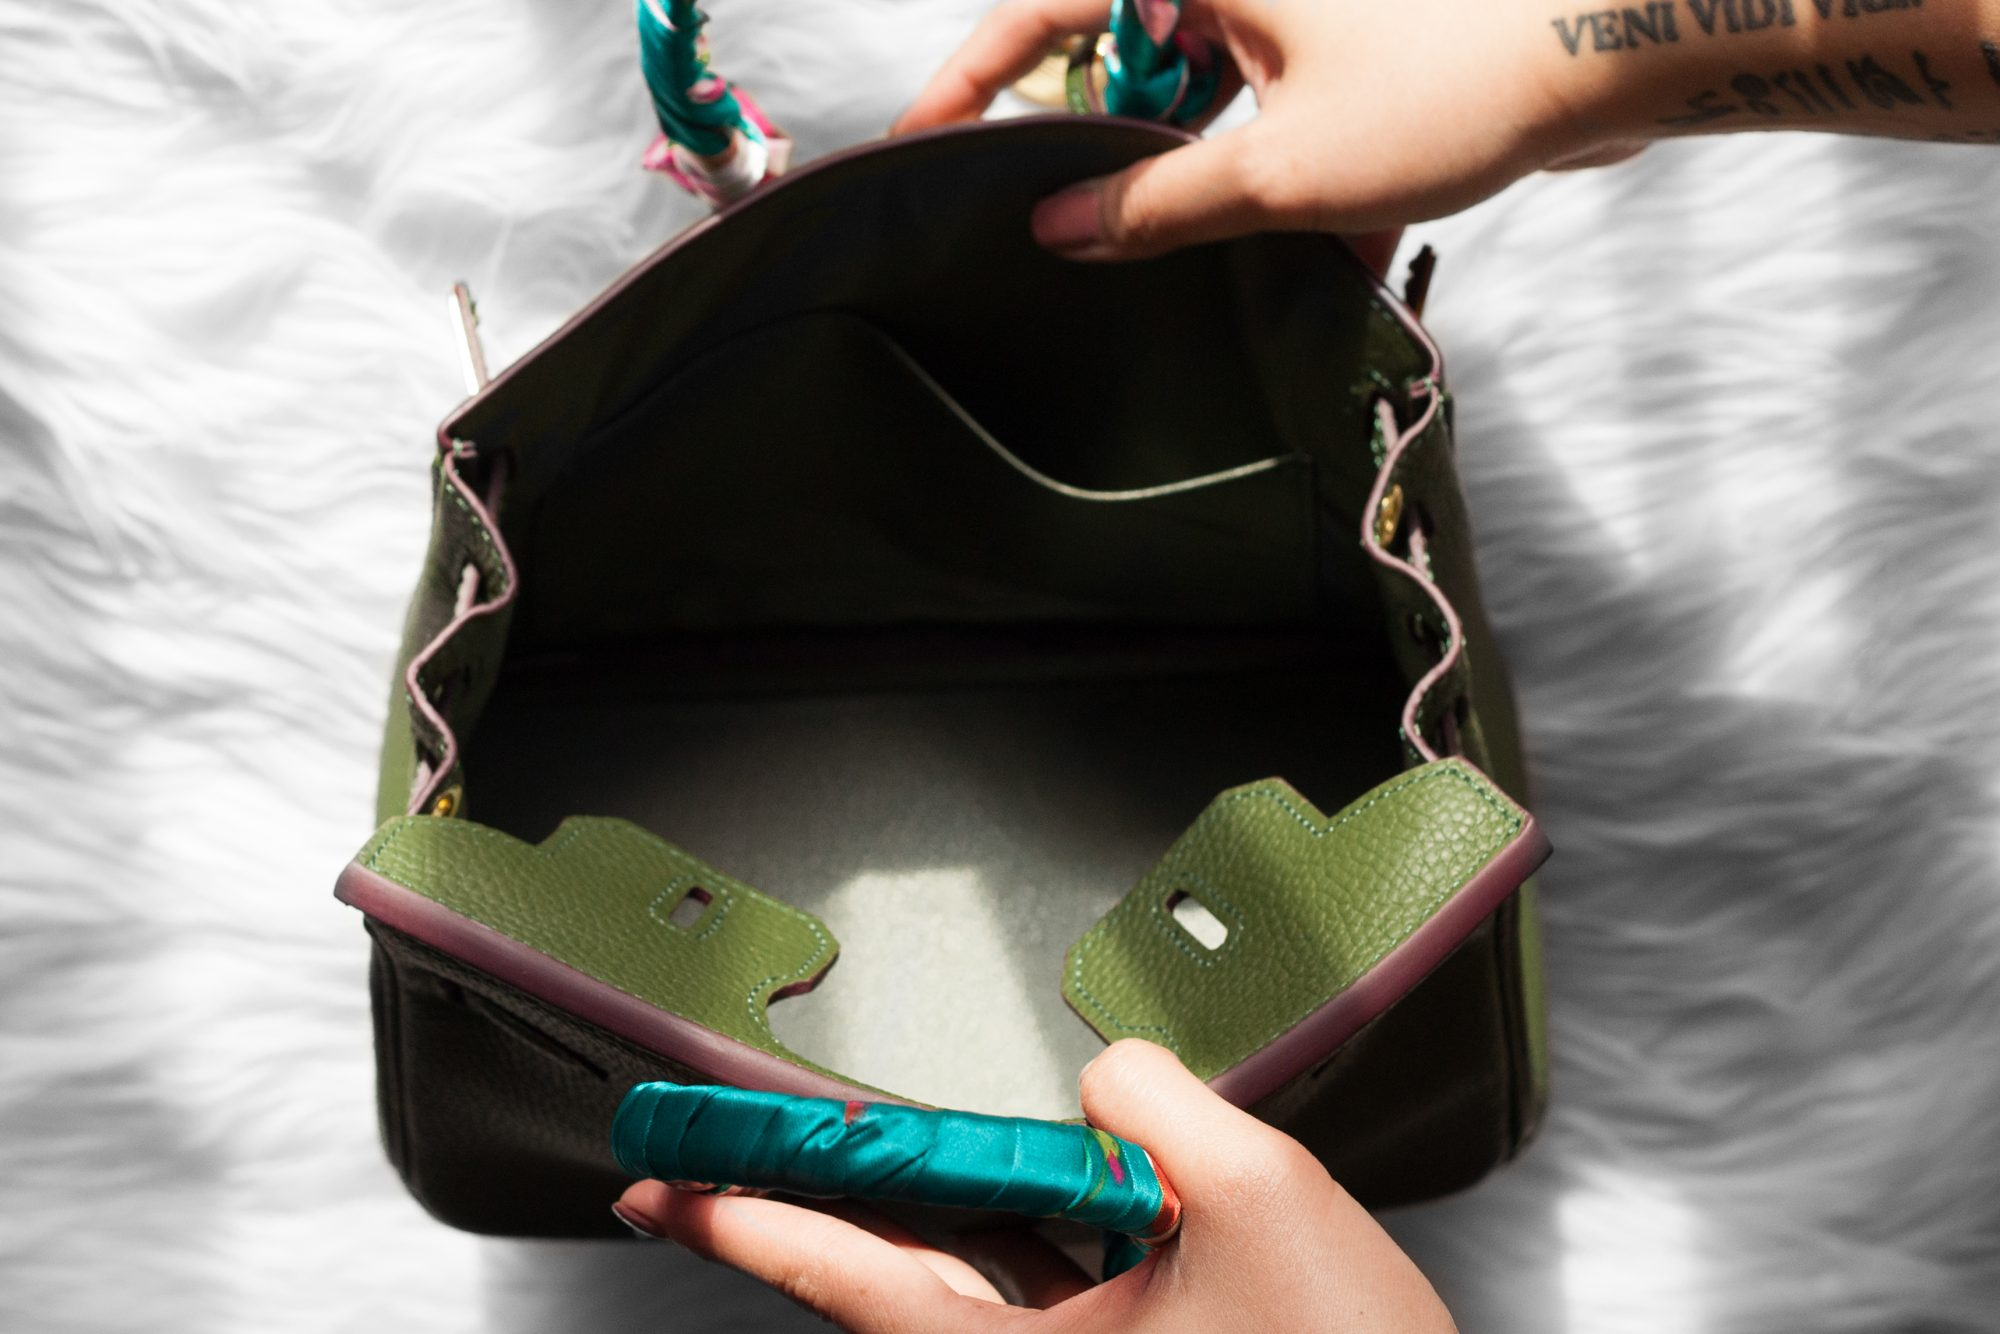 d86e865bbc49 Want the famous little bag that Kendall and Kylie Jenner sport for less